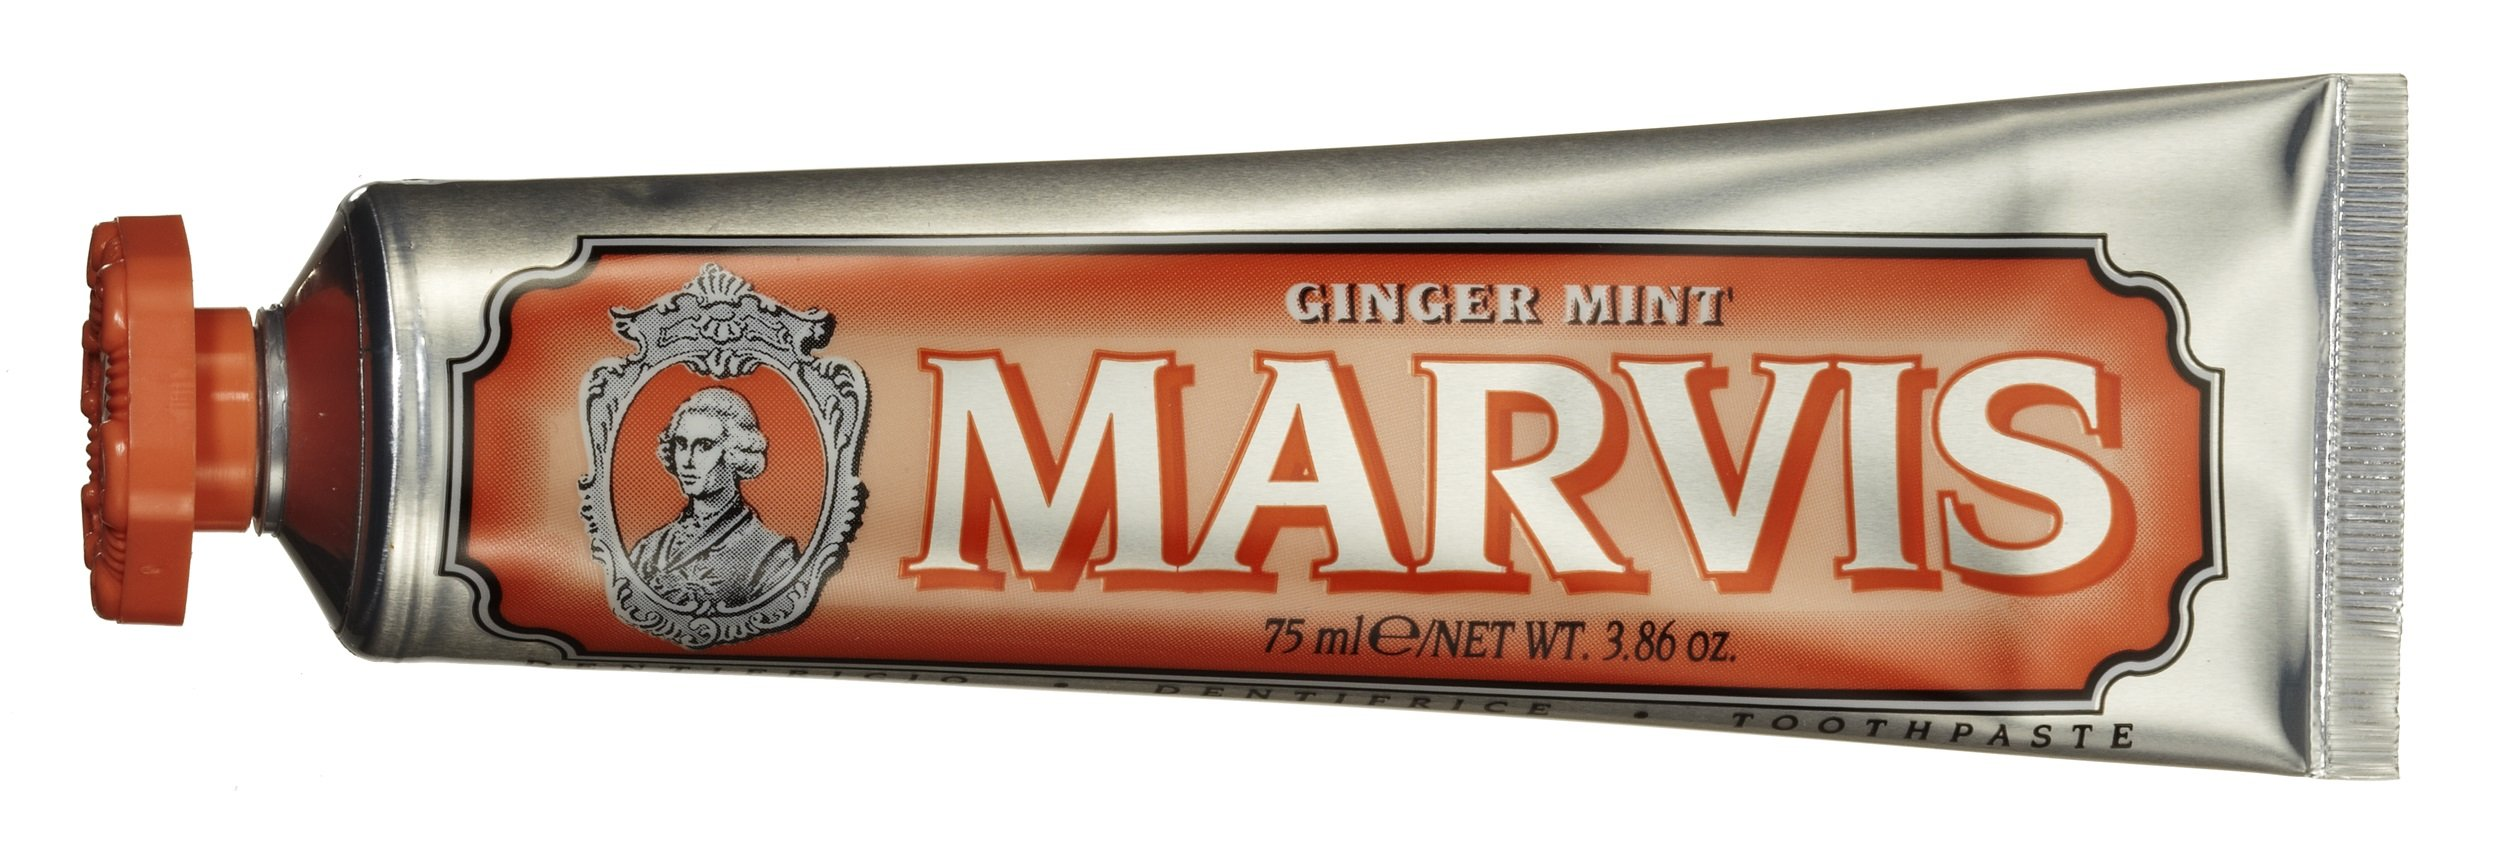 Marvis Ginger Mint Toothpaste, 3.8 oz